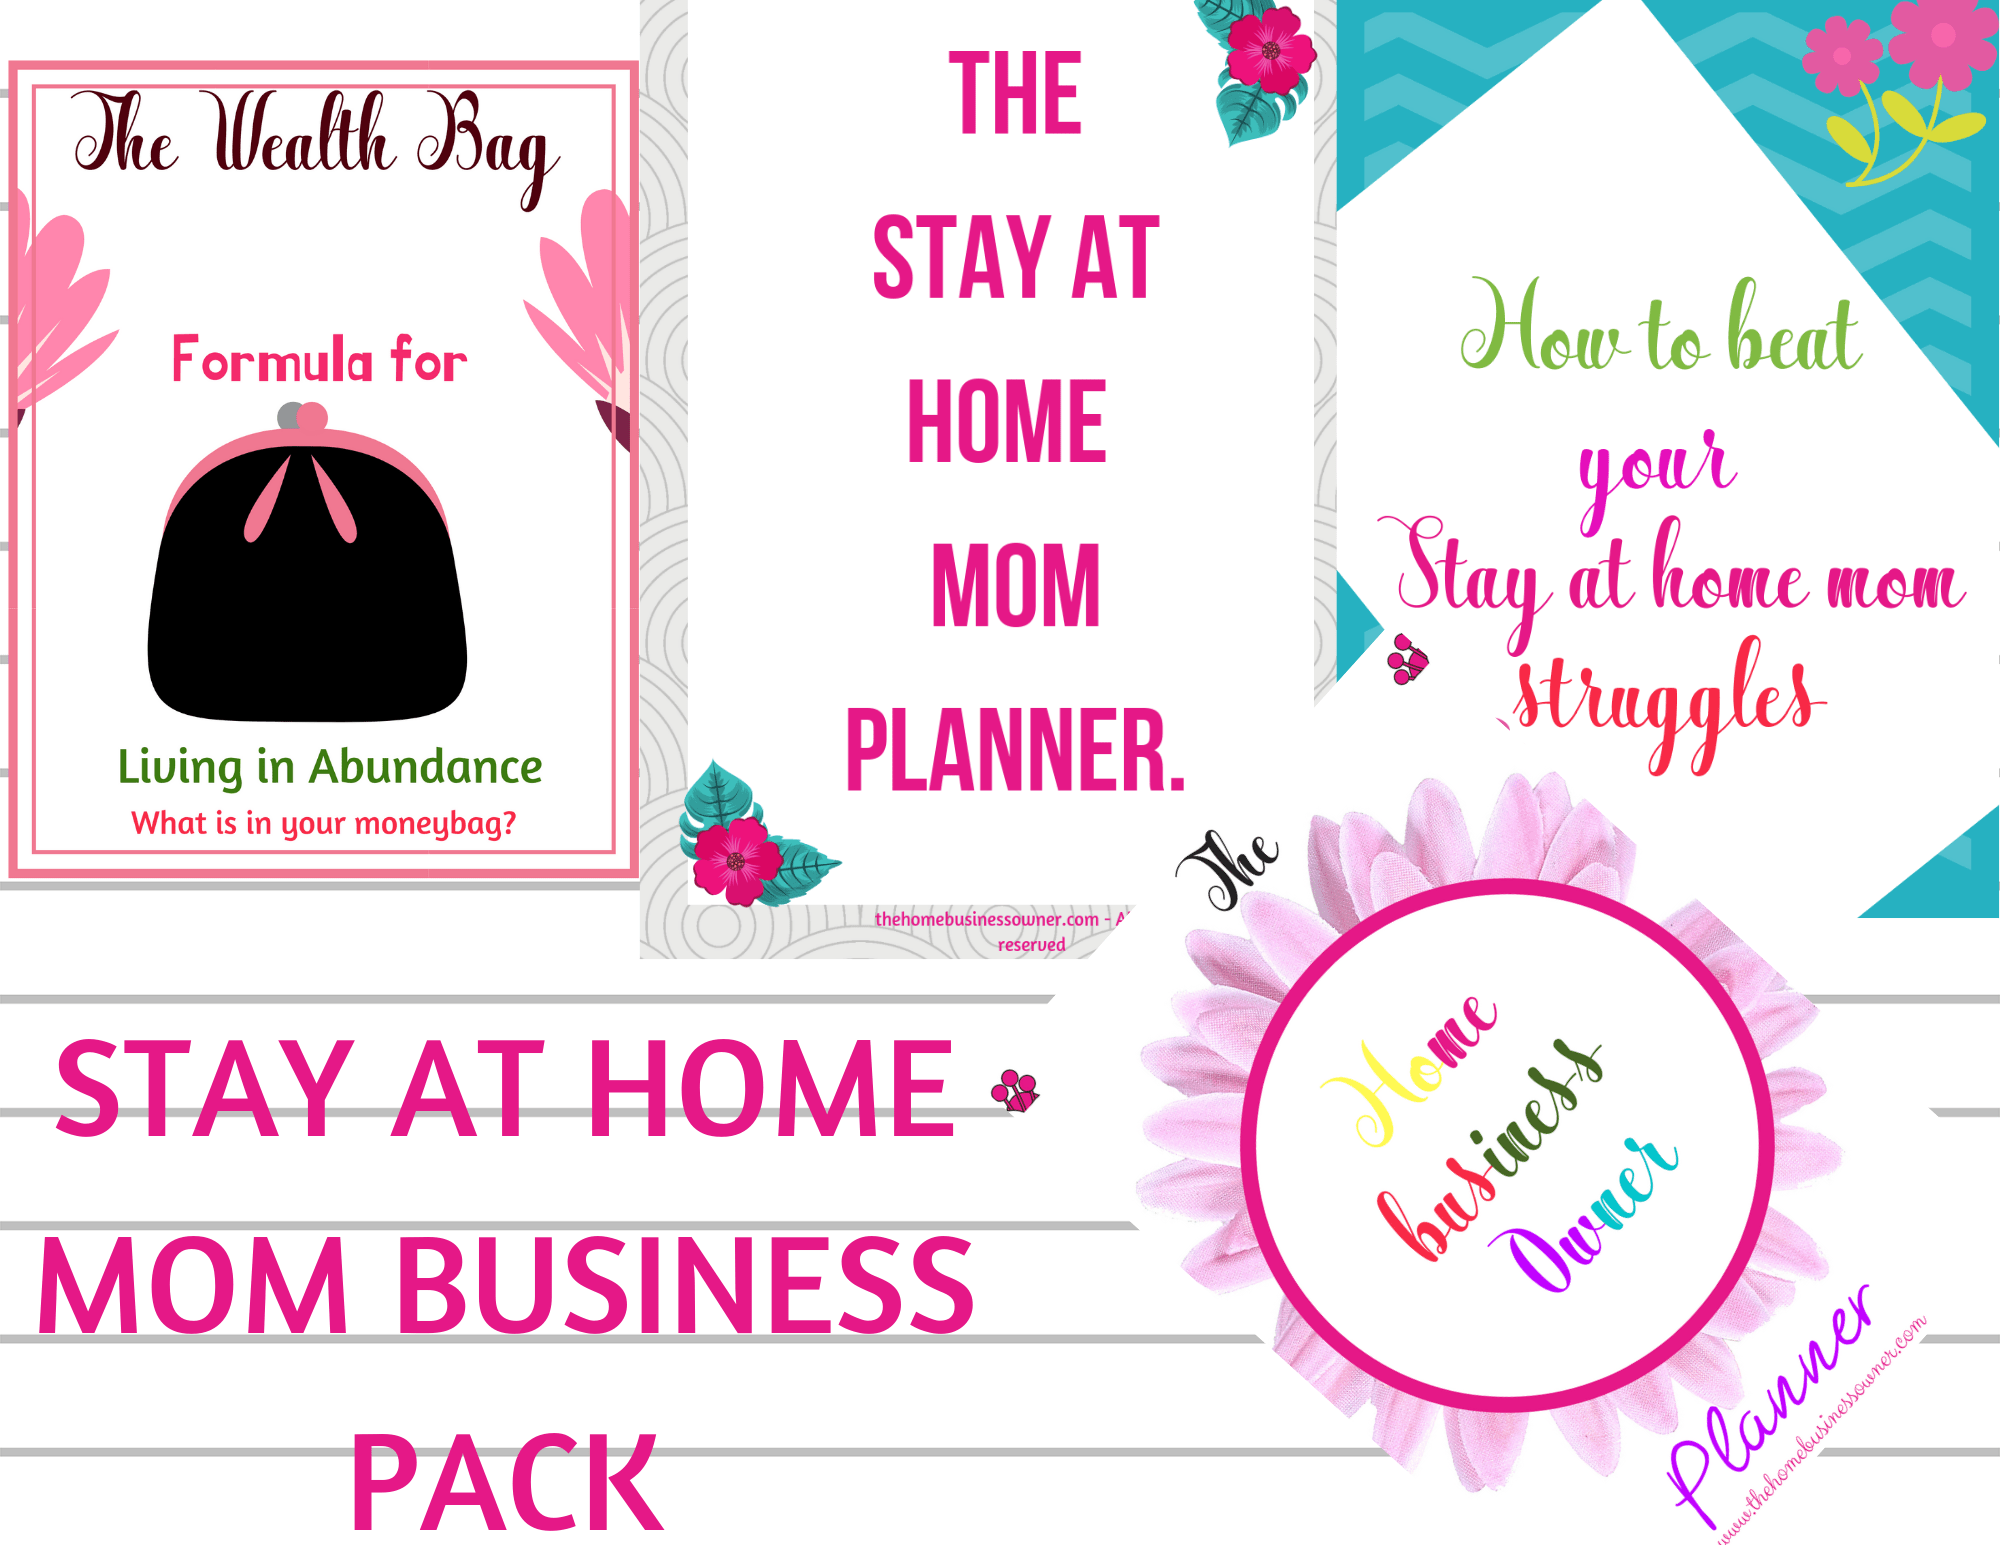 Stay At Home Mom Business Pack Thbo Blog